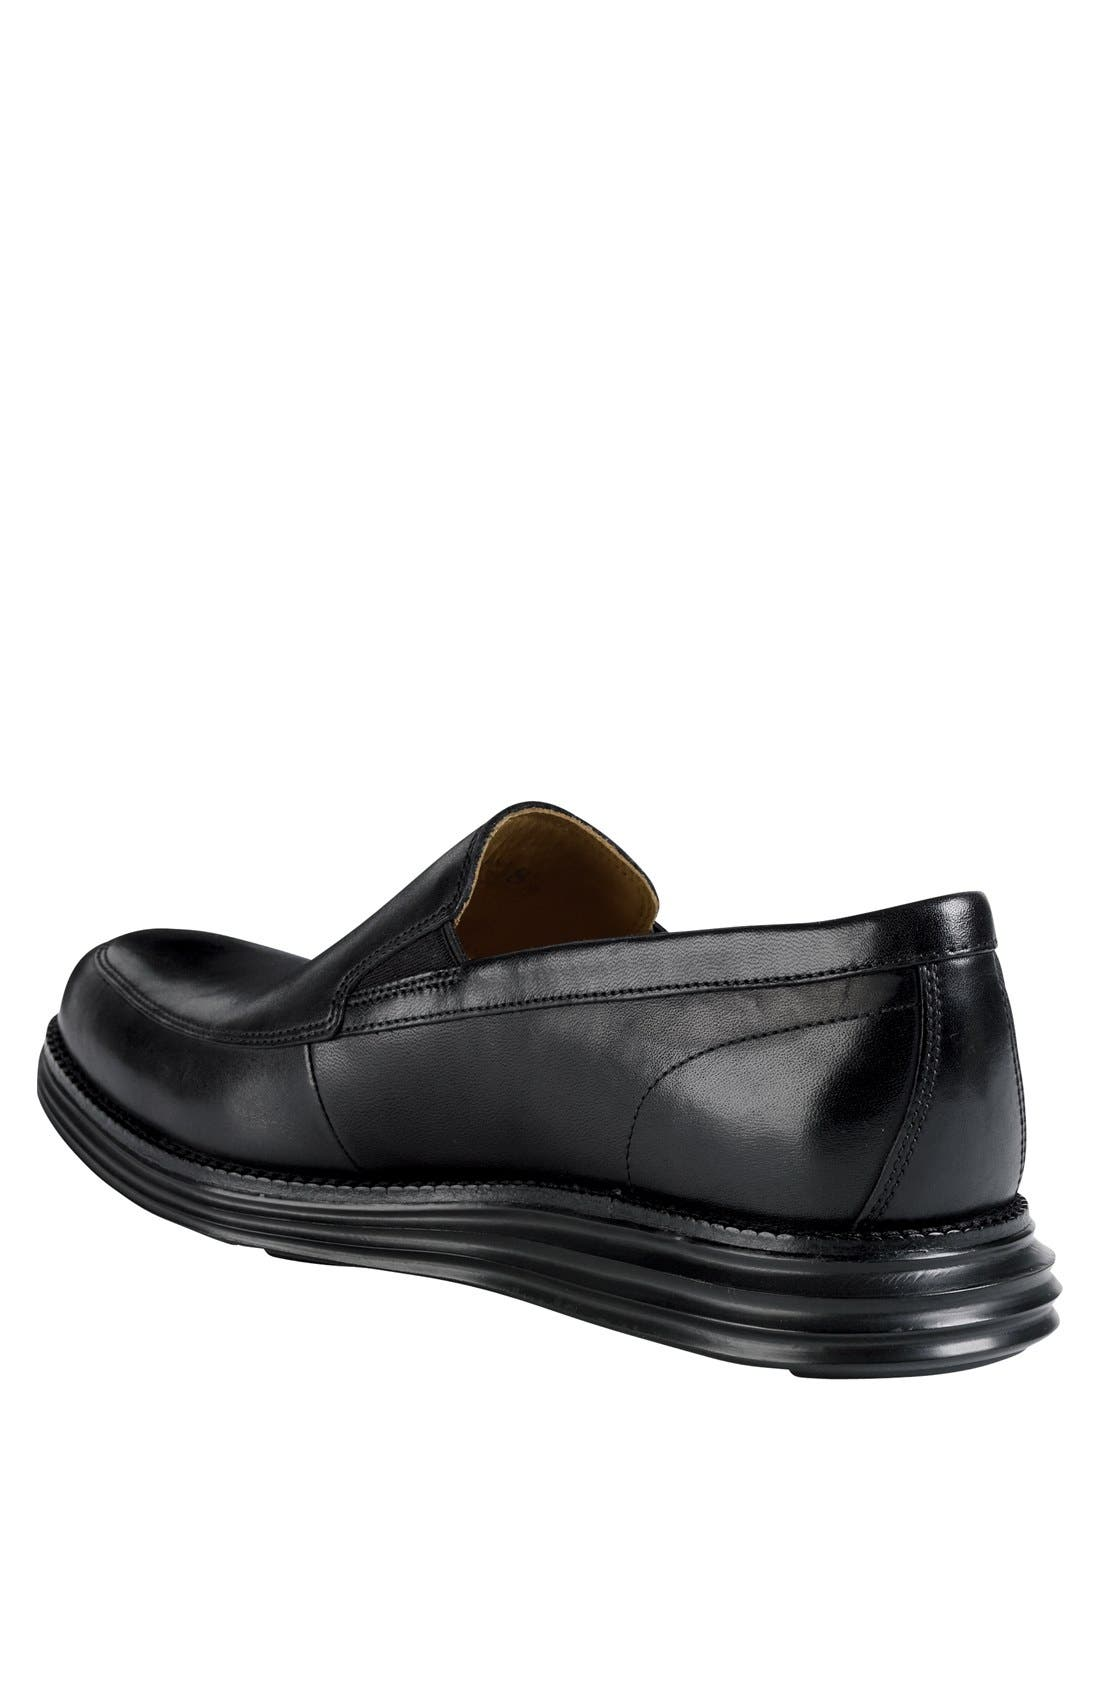 COLE HAAN,                             'LunarGrand' Apron Toe Loafer,                             Alternate thumbnail 2, color,                             001